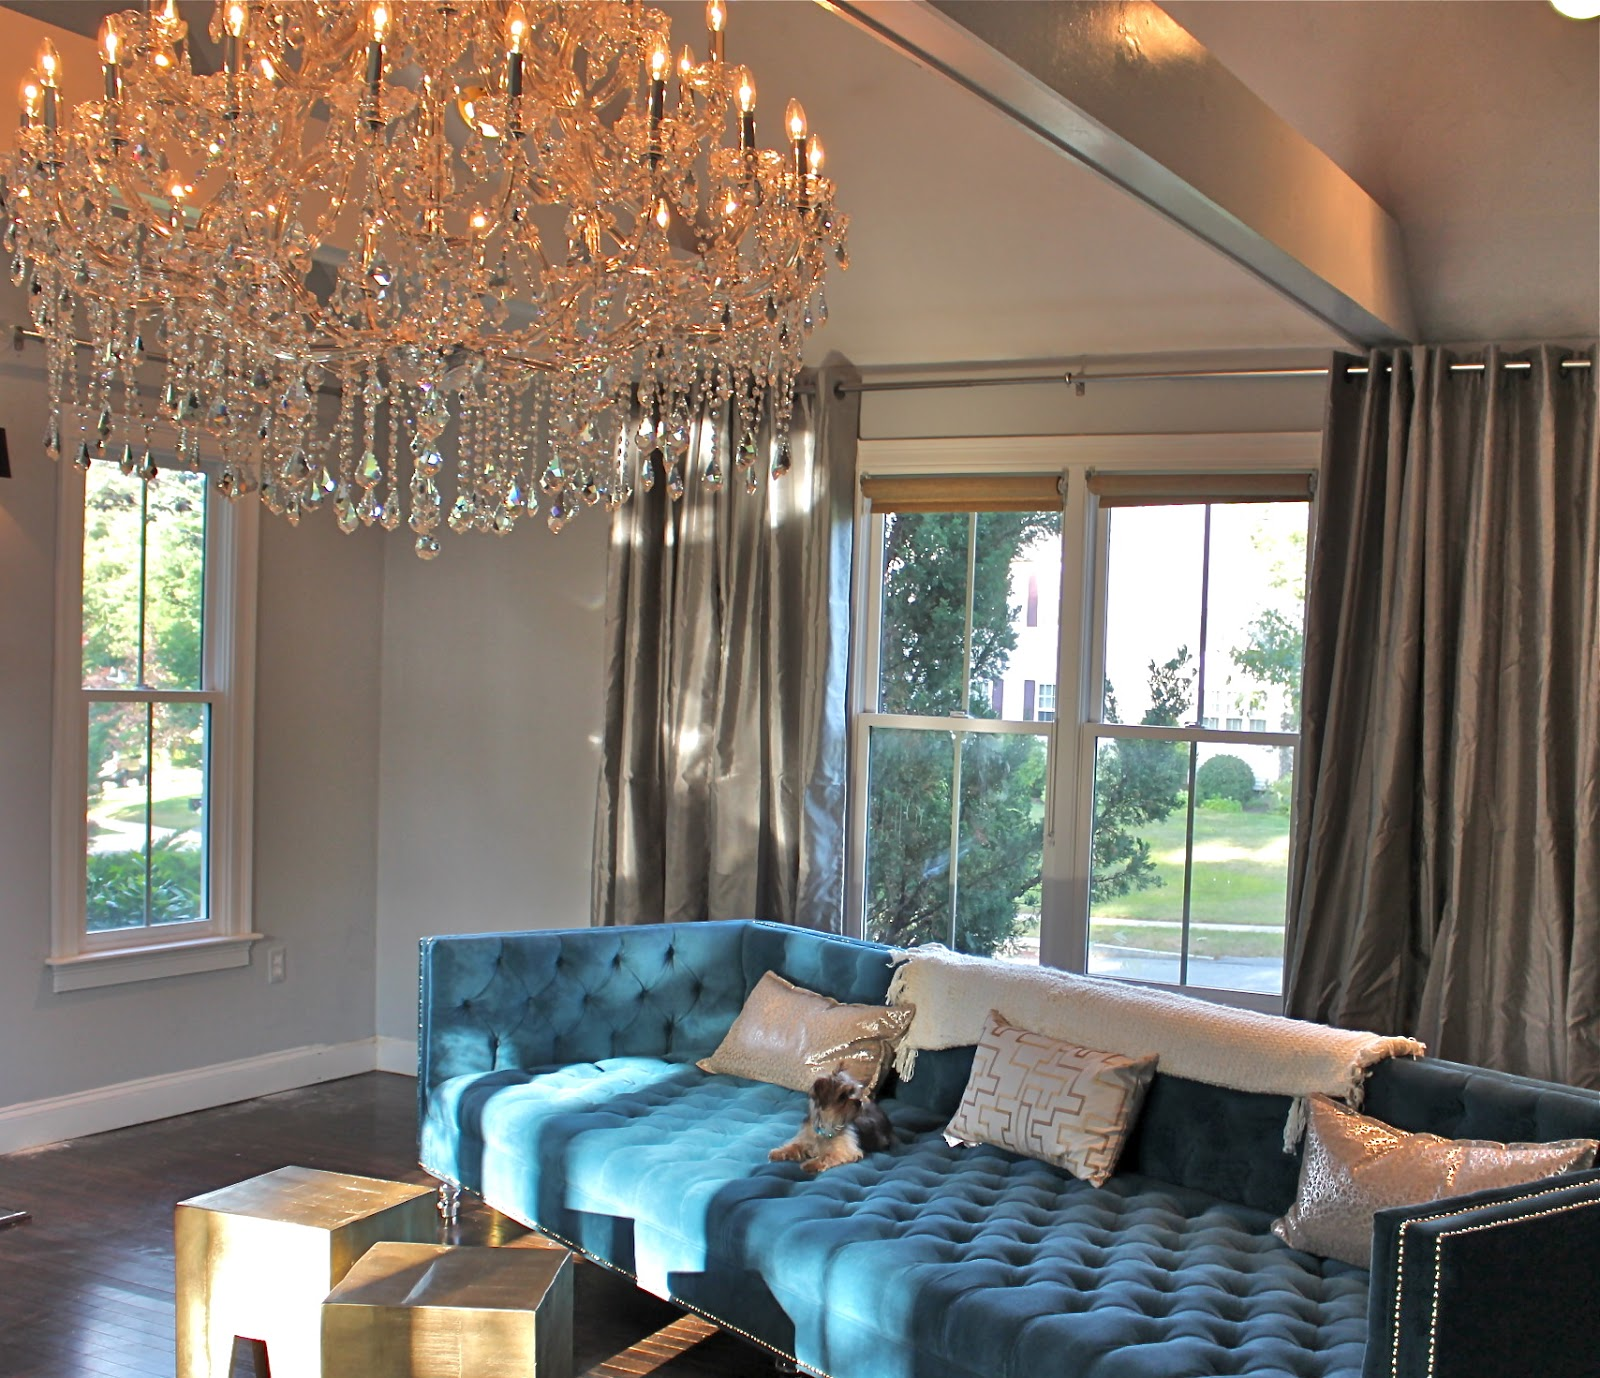 House updates new family room chandelier south shore house updates new family room chandelier mozeypictures Gallery